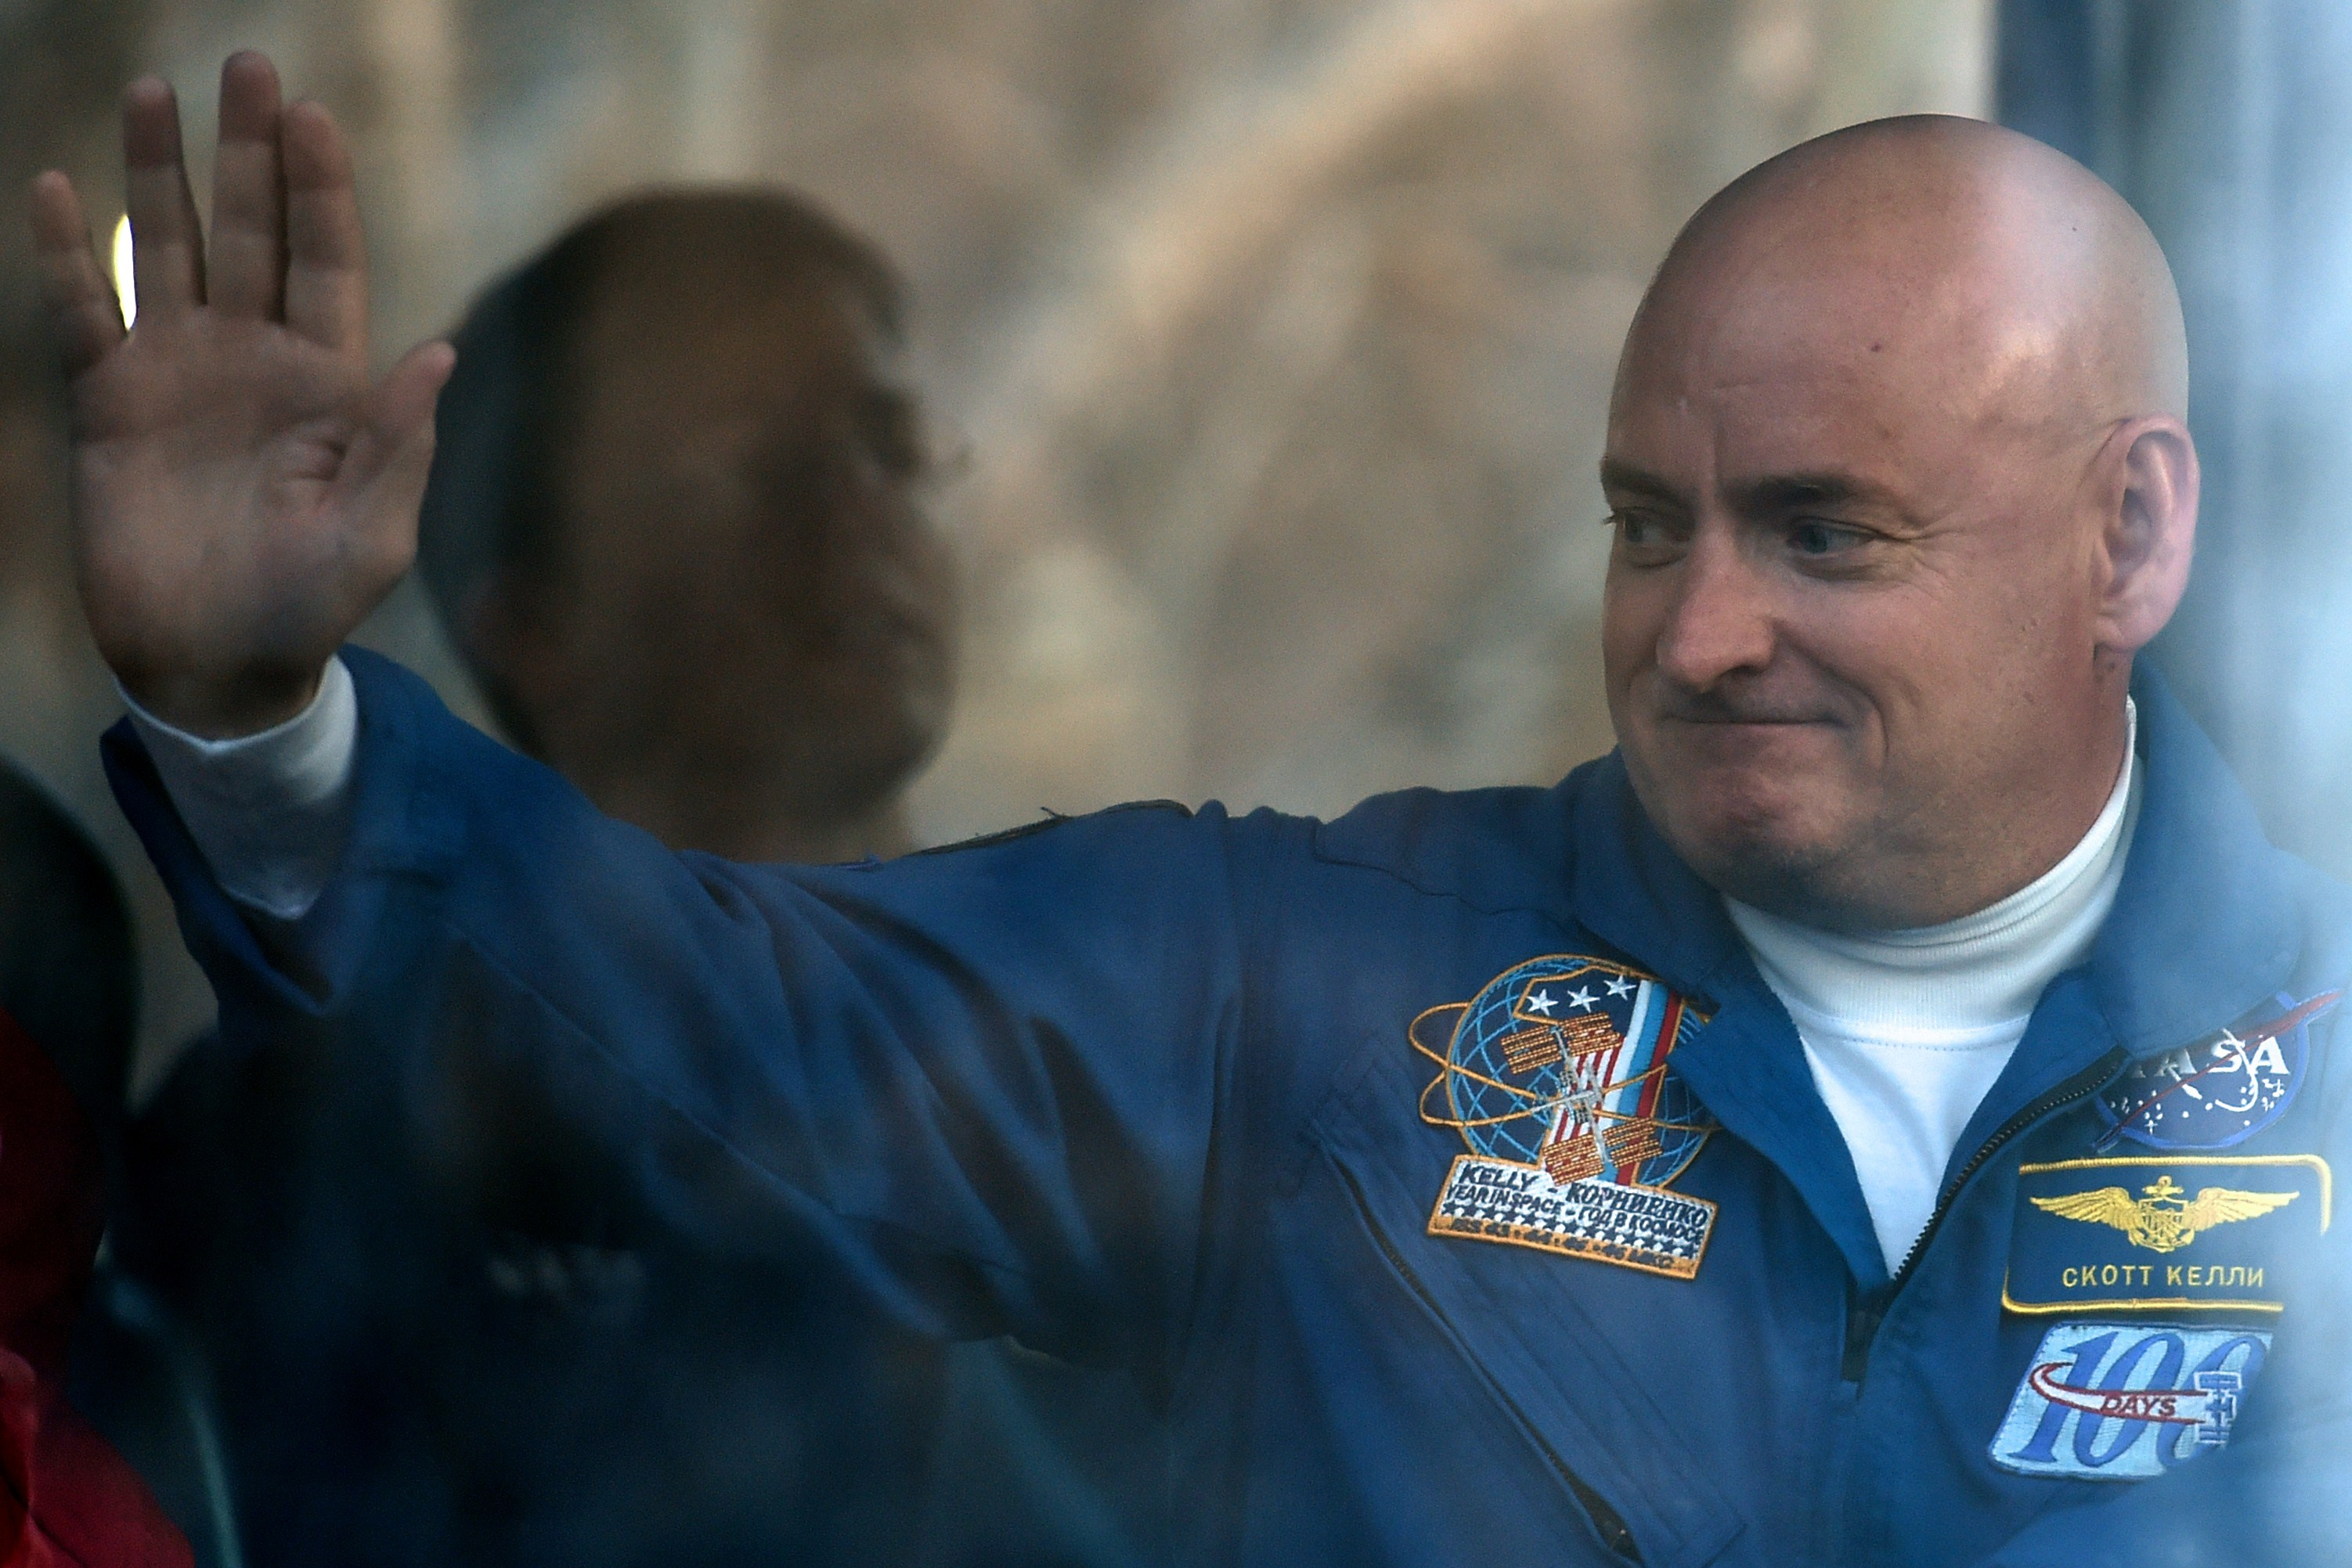 Scott Kelly waves from a bus during a sending-off ceremony in the Russian-leased Baikonur cosmodrome late on March 27, 2015.